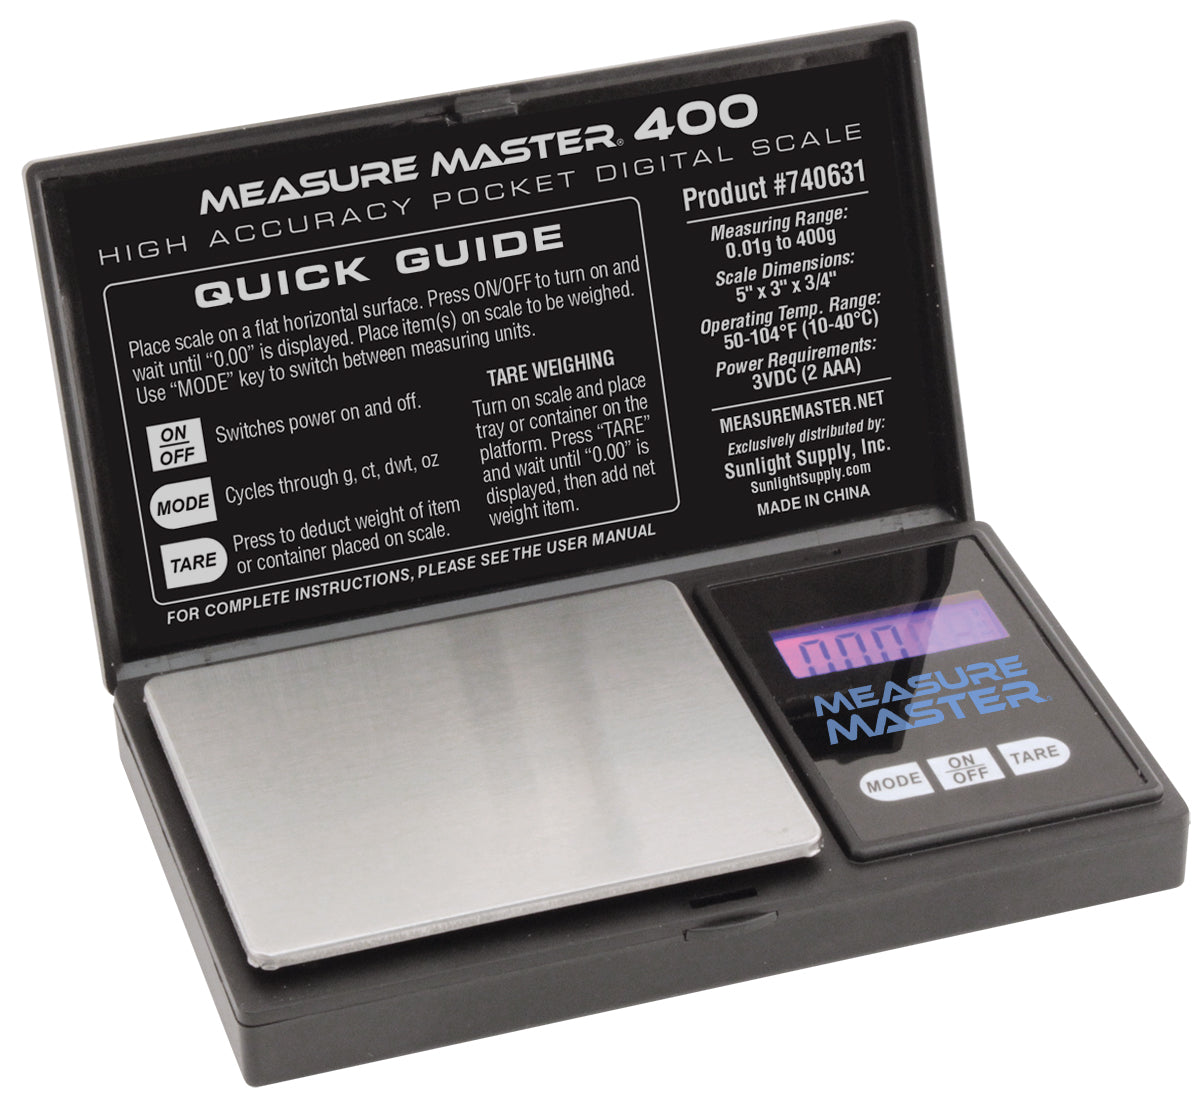 Measure Master - 400g Digital Pocket Scale - 0.01g Accuracy